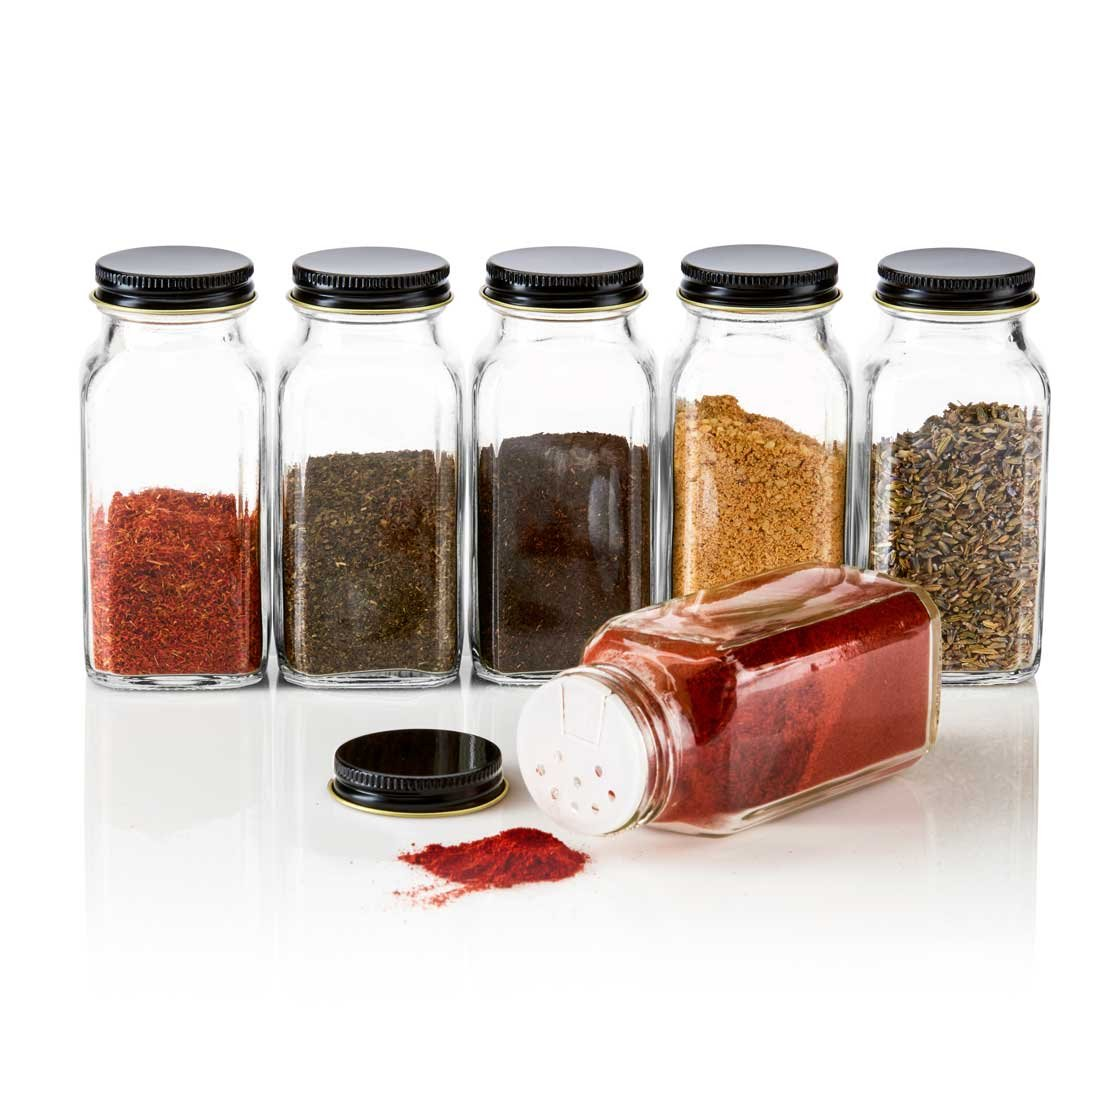 SpiceLuxe 6 Large Square Glass Spice Bottles 6 oz Jars with Simply Organic Style Metal Lids, Shaker Tops